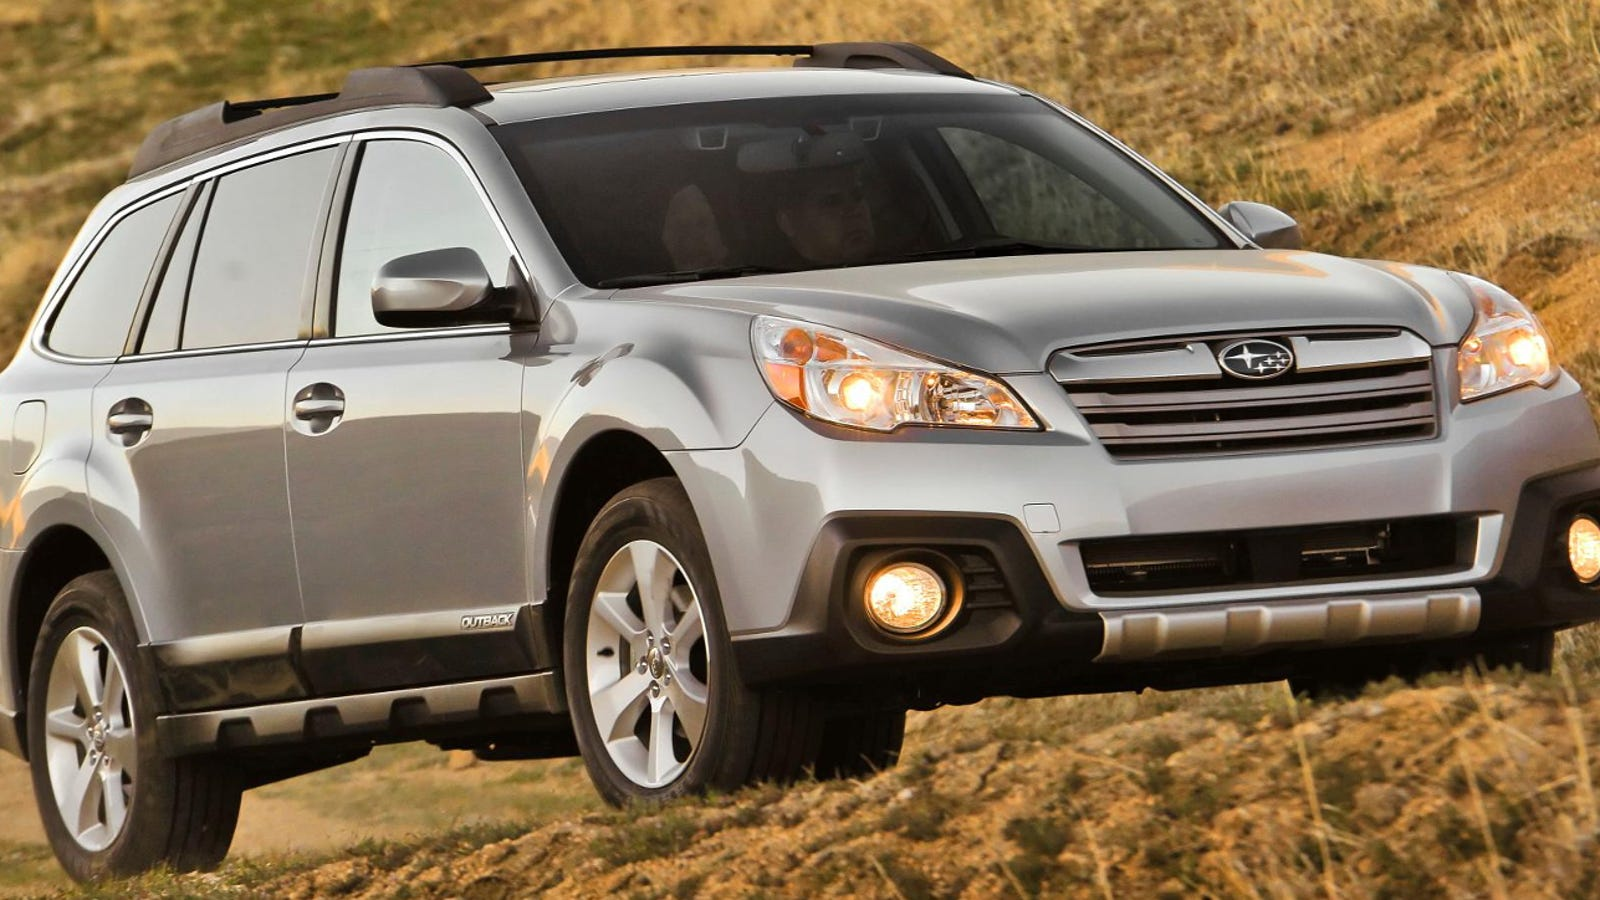 Oil For Subaru Outback >> Subaru Owners Win Compensation And Warranty Boost For Oil Burning Cars